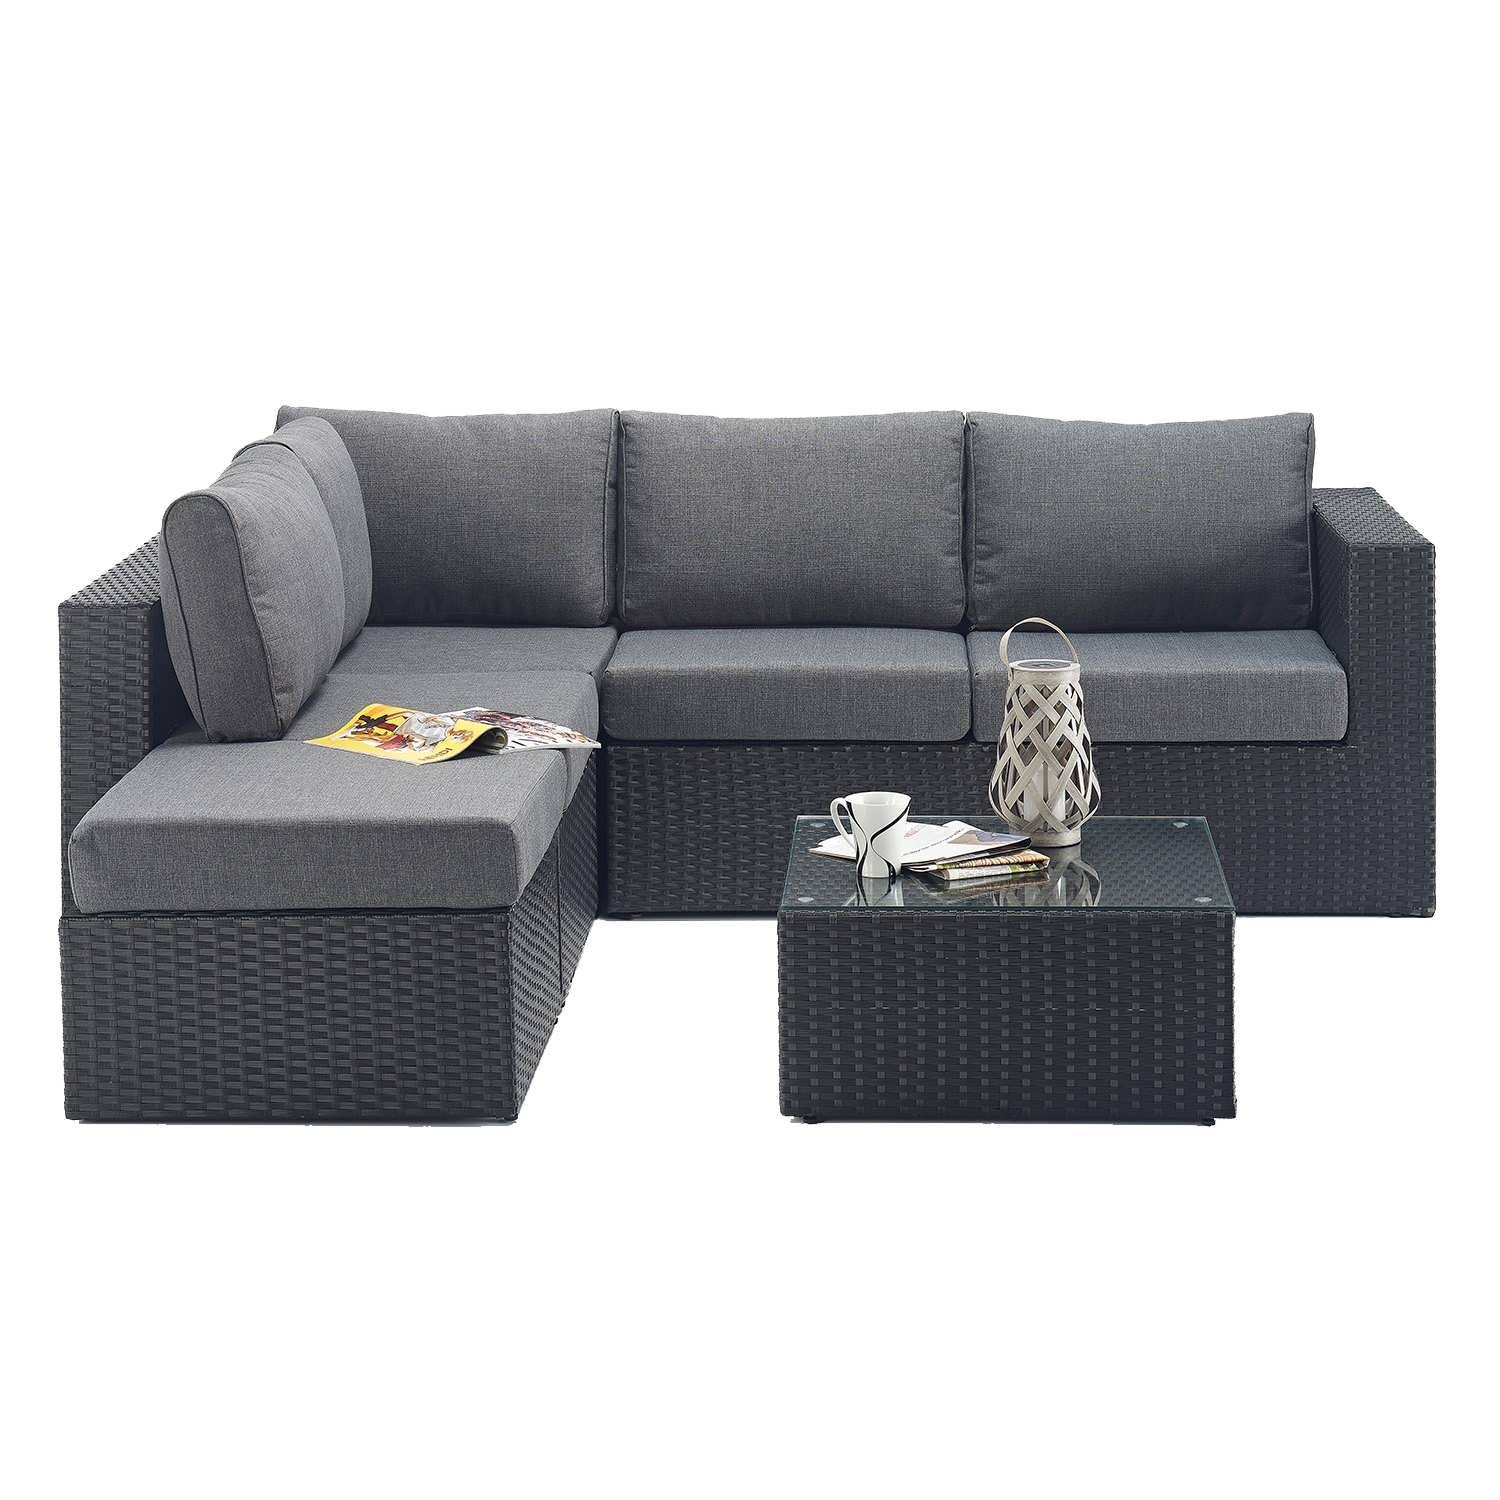 Sofa : Buy Grey Couch Modern Grey Sofa Small Gray Sofa Brown throughout Small Grey Sofas (Image 13 of 15)